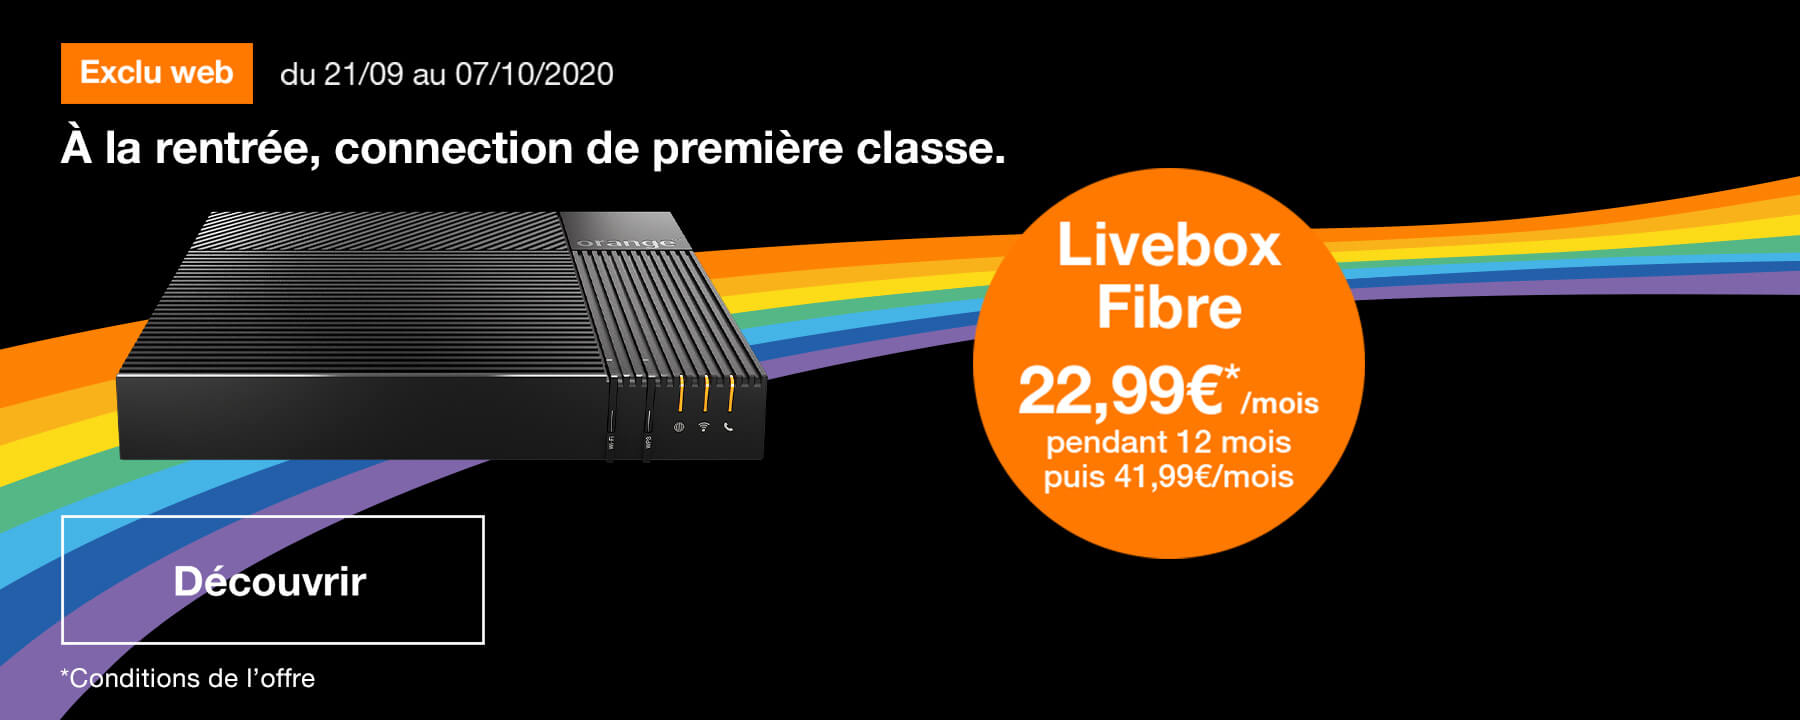 Bon plan Livebox Fibre